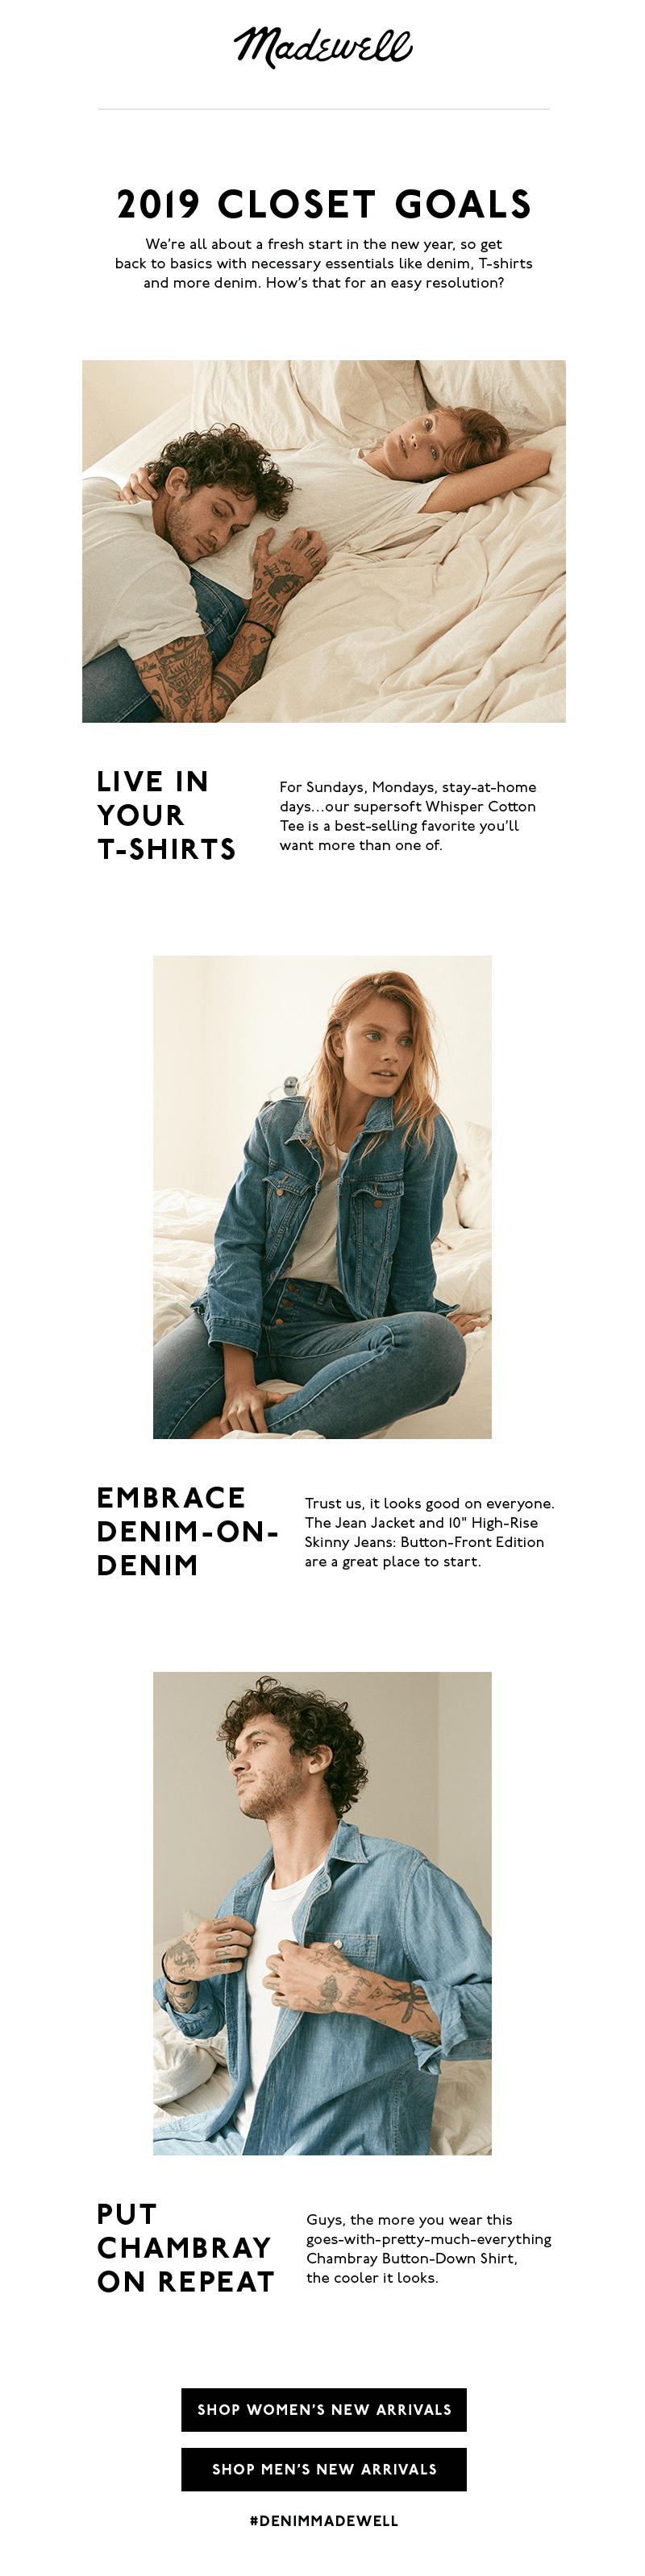 madewell email design best practices